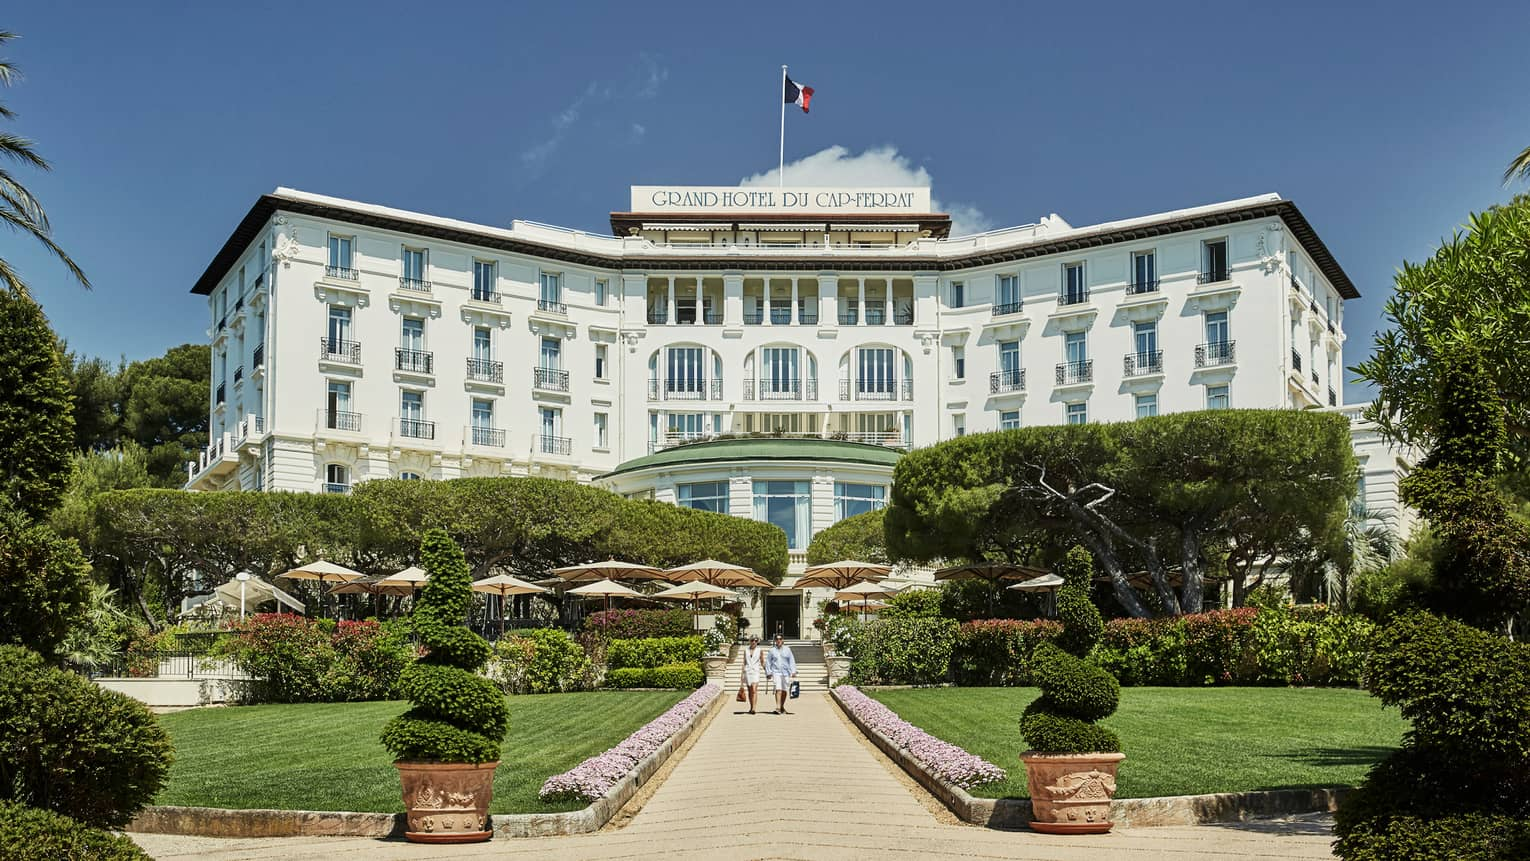 Two people walk down sunny stone path under large Grand-Hotel du Cap-Ferrat